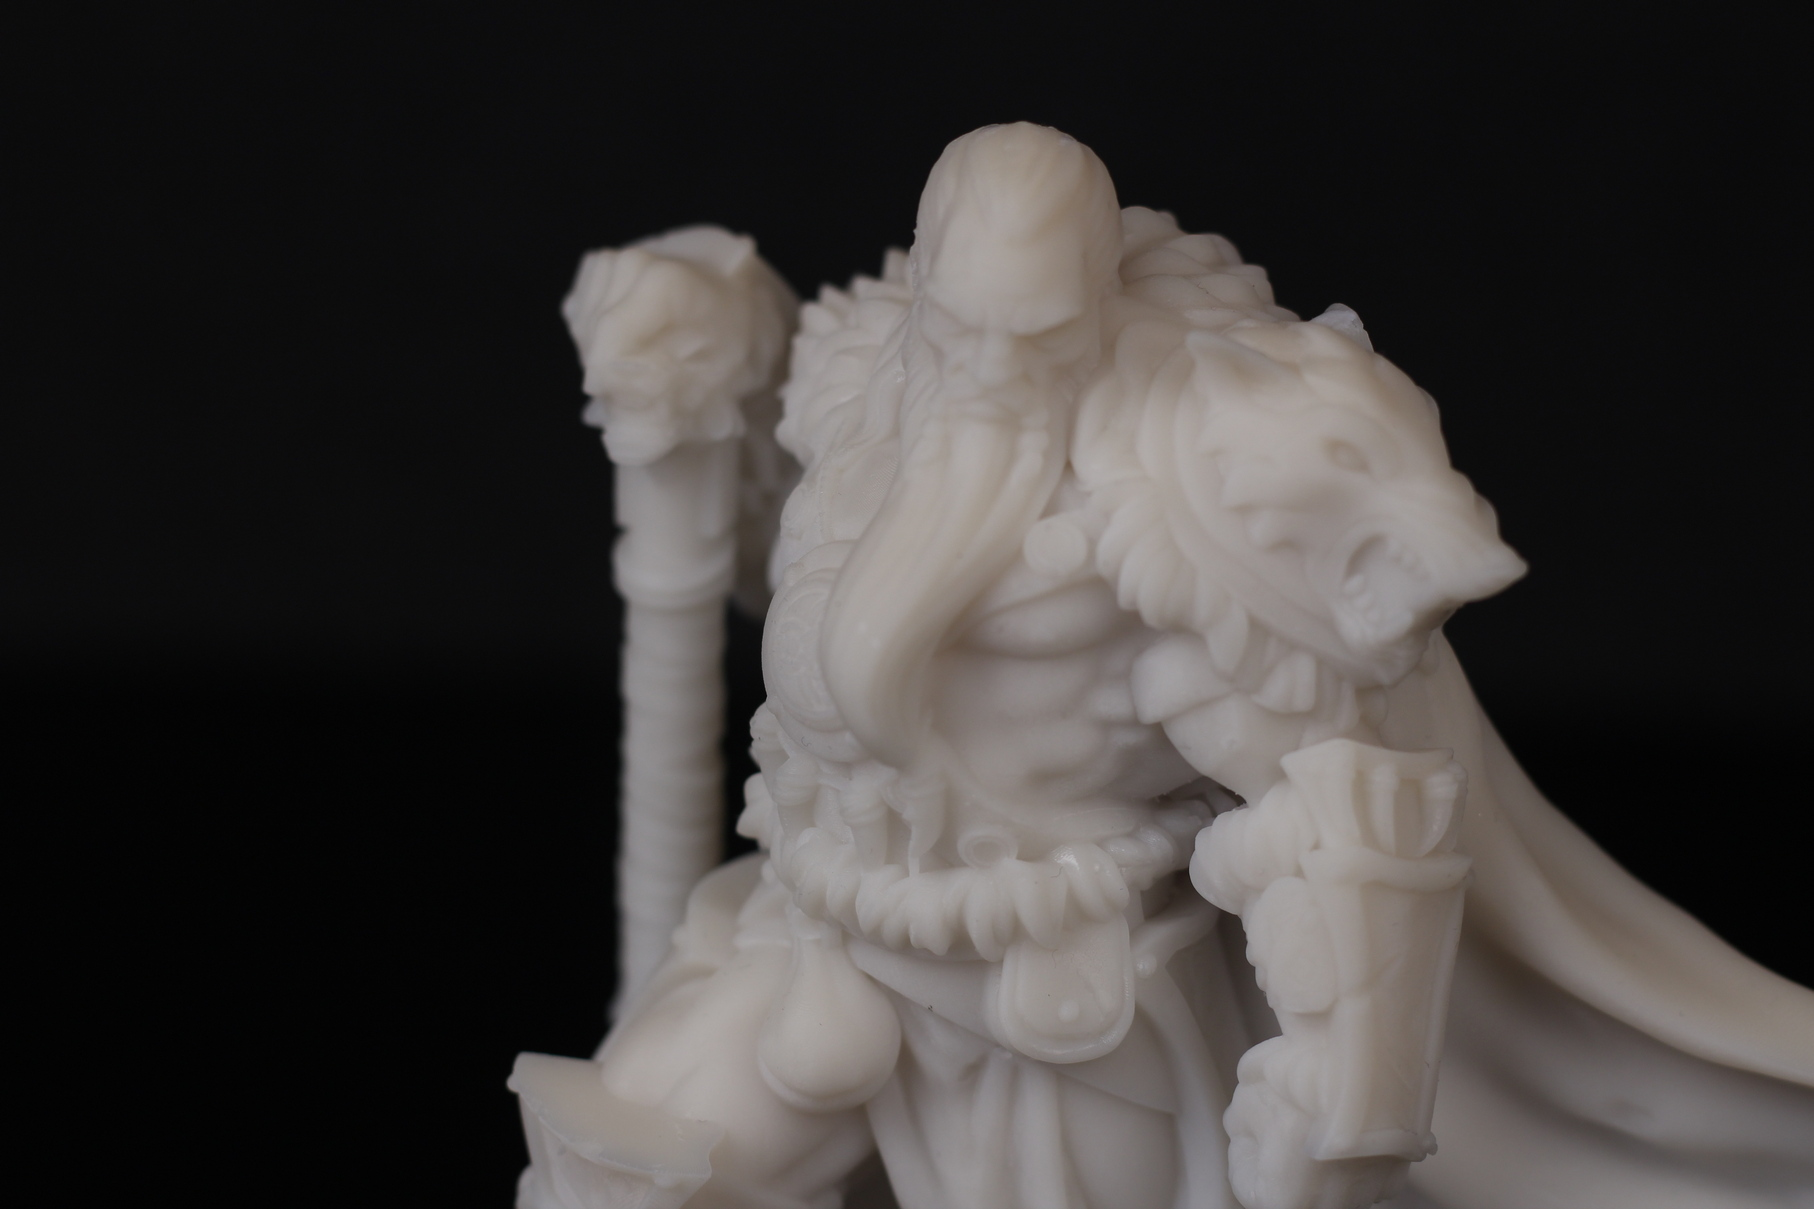 Barbarian Chieftain printed on Anycubic Photon Mono X 3 | Anycubic Photon Mono X Review - Large Format Resin 3D Printer